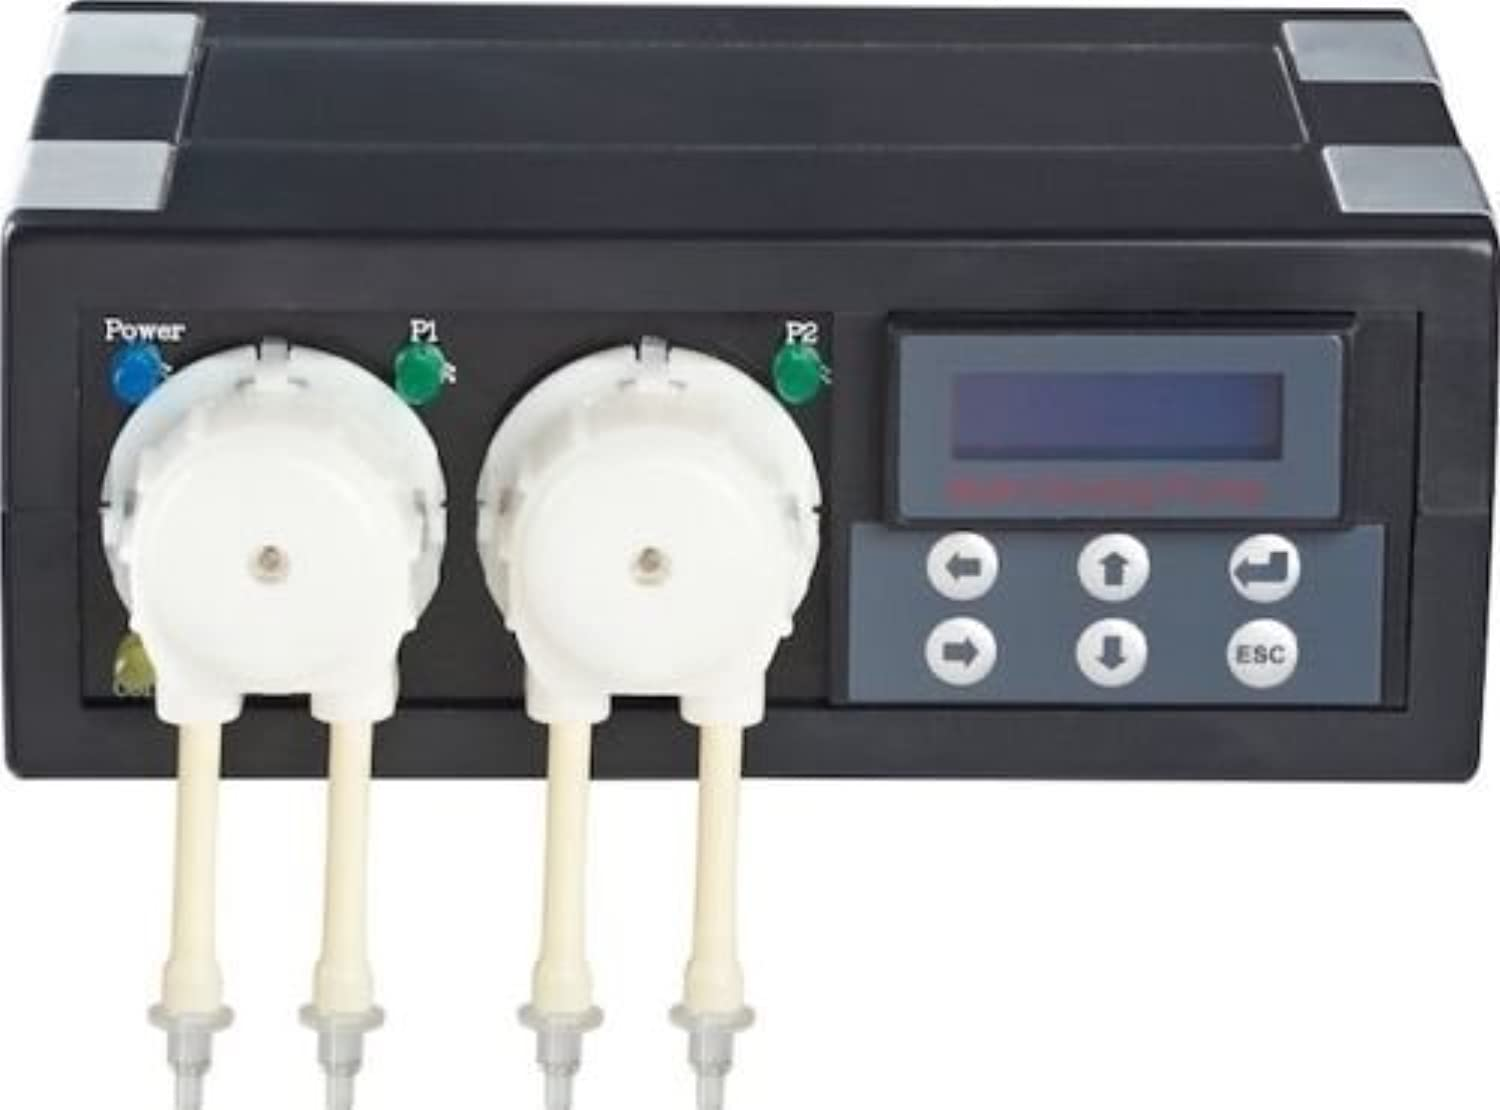 Jecod DP2 Programmable Auto Dosing Pump, 2 Channel